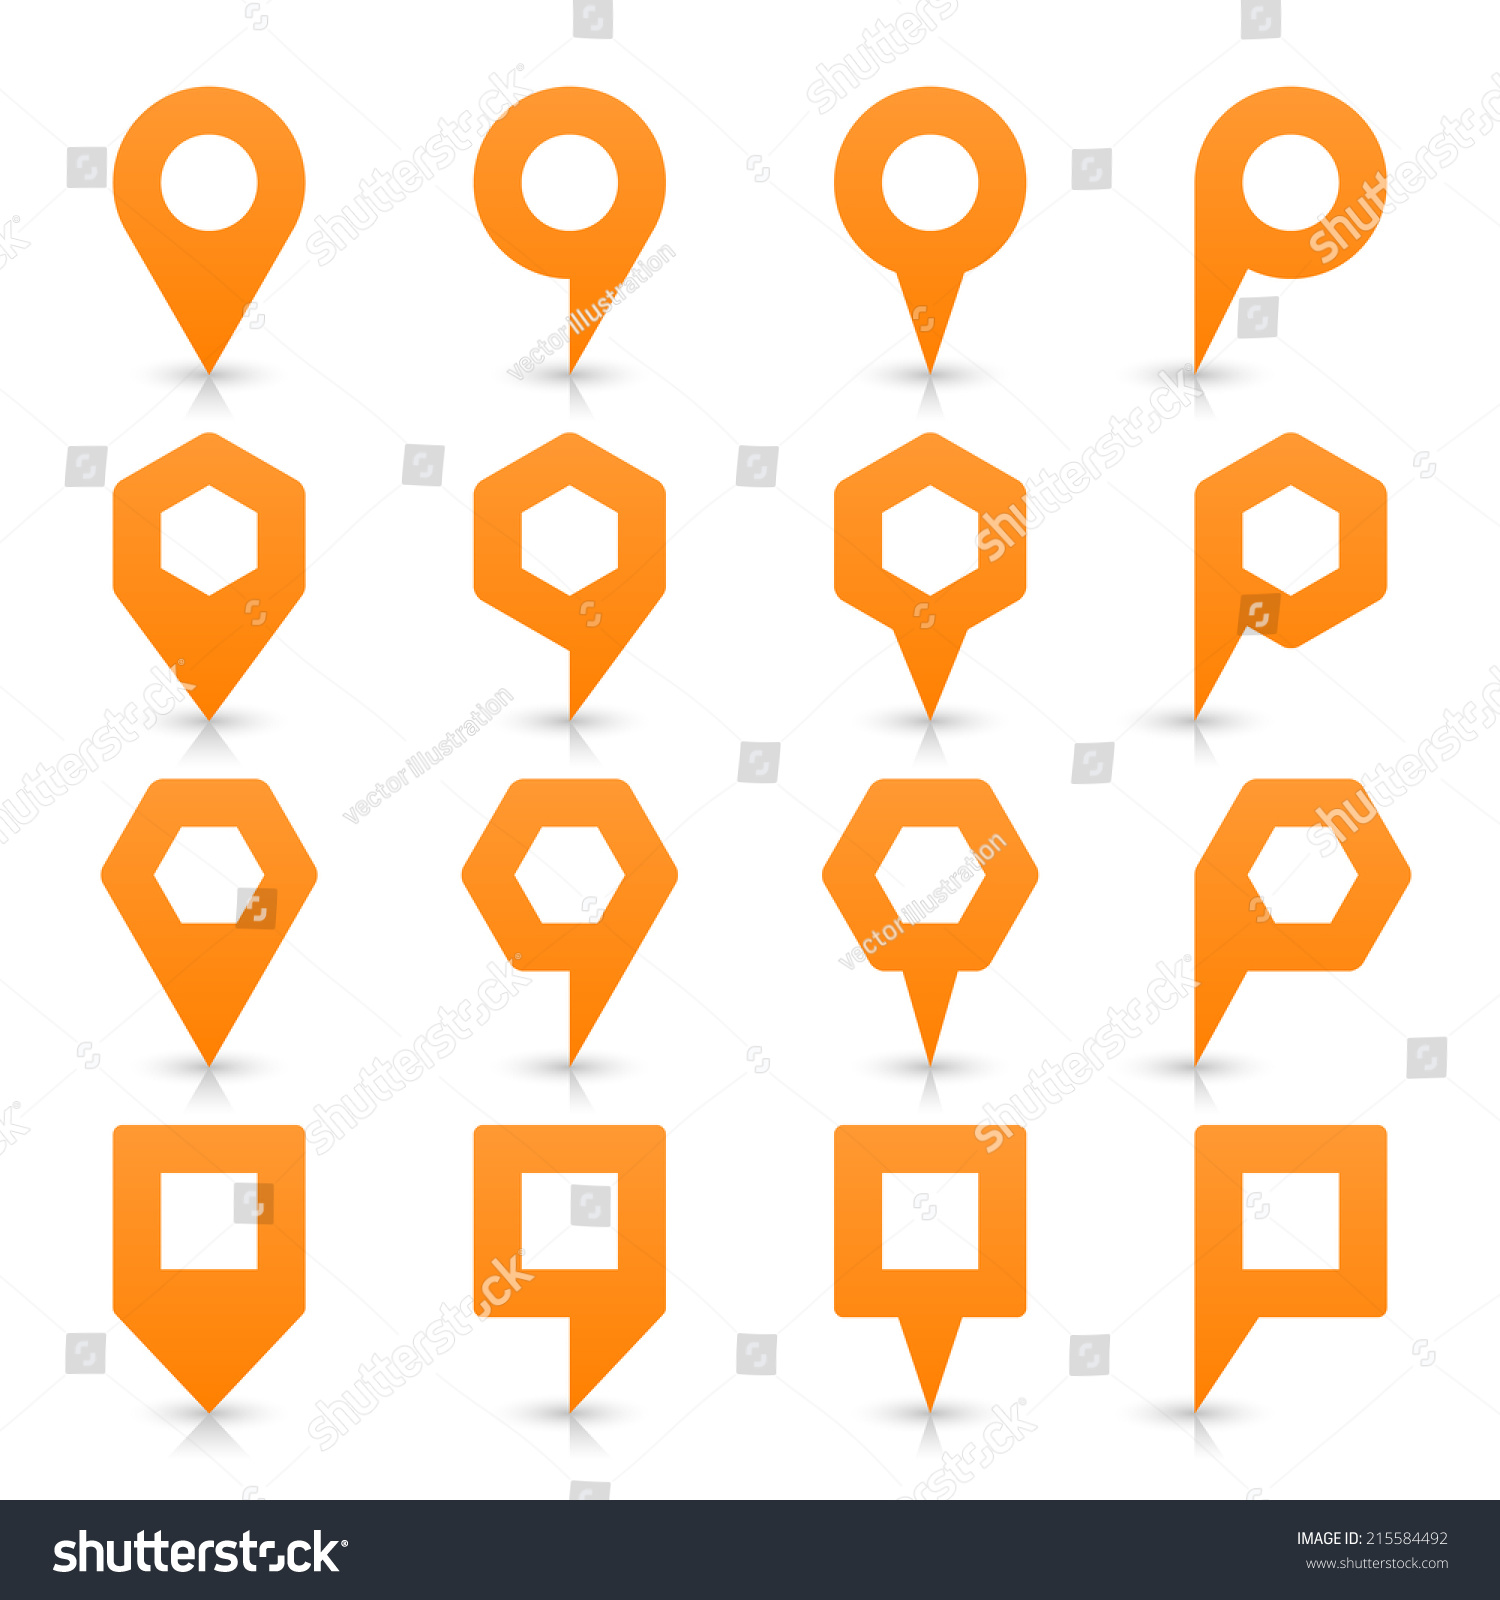 Orange map pin sign location icon with empty copy space and gray